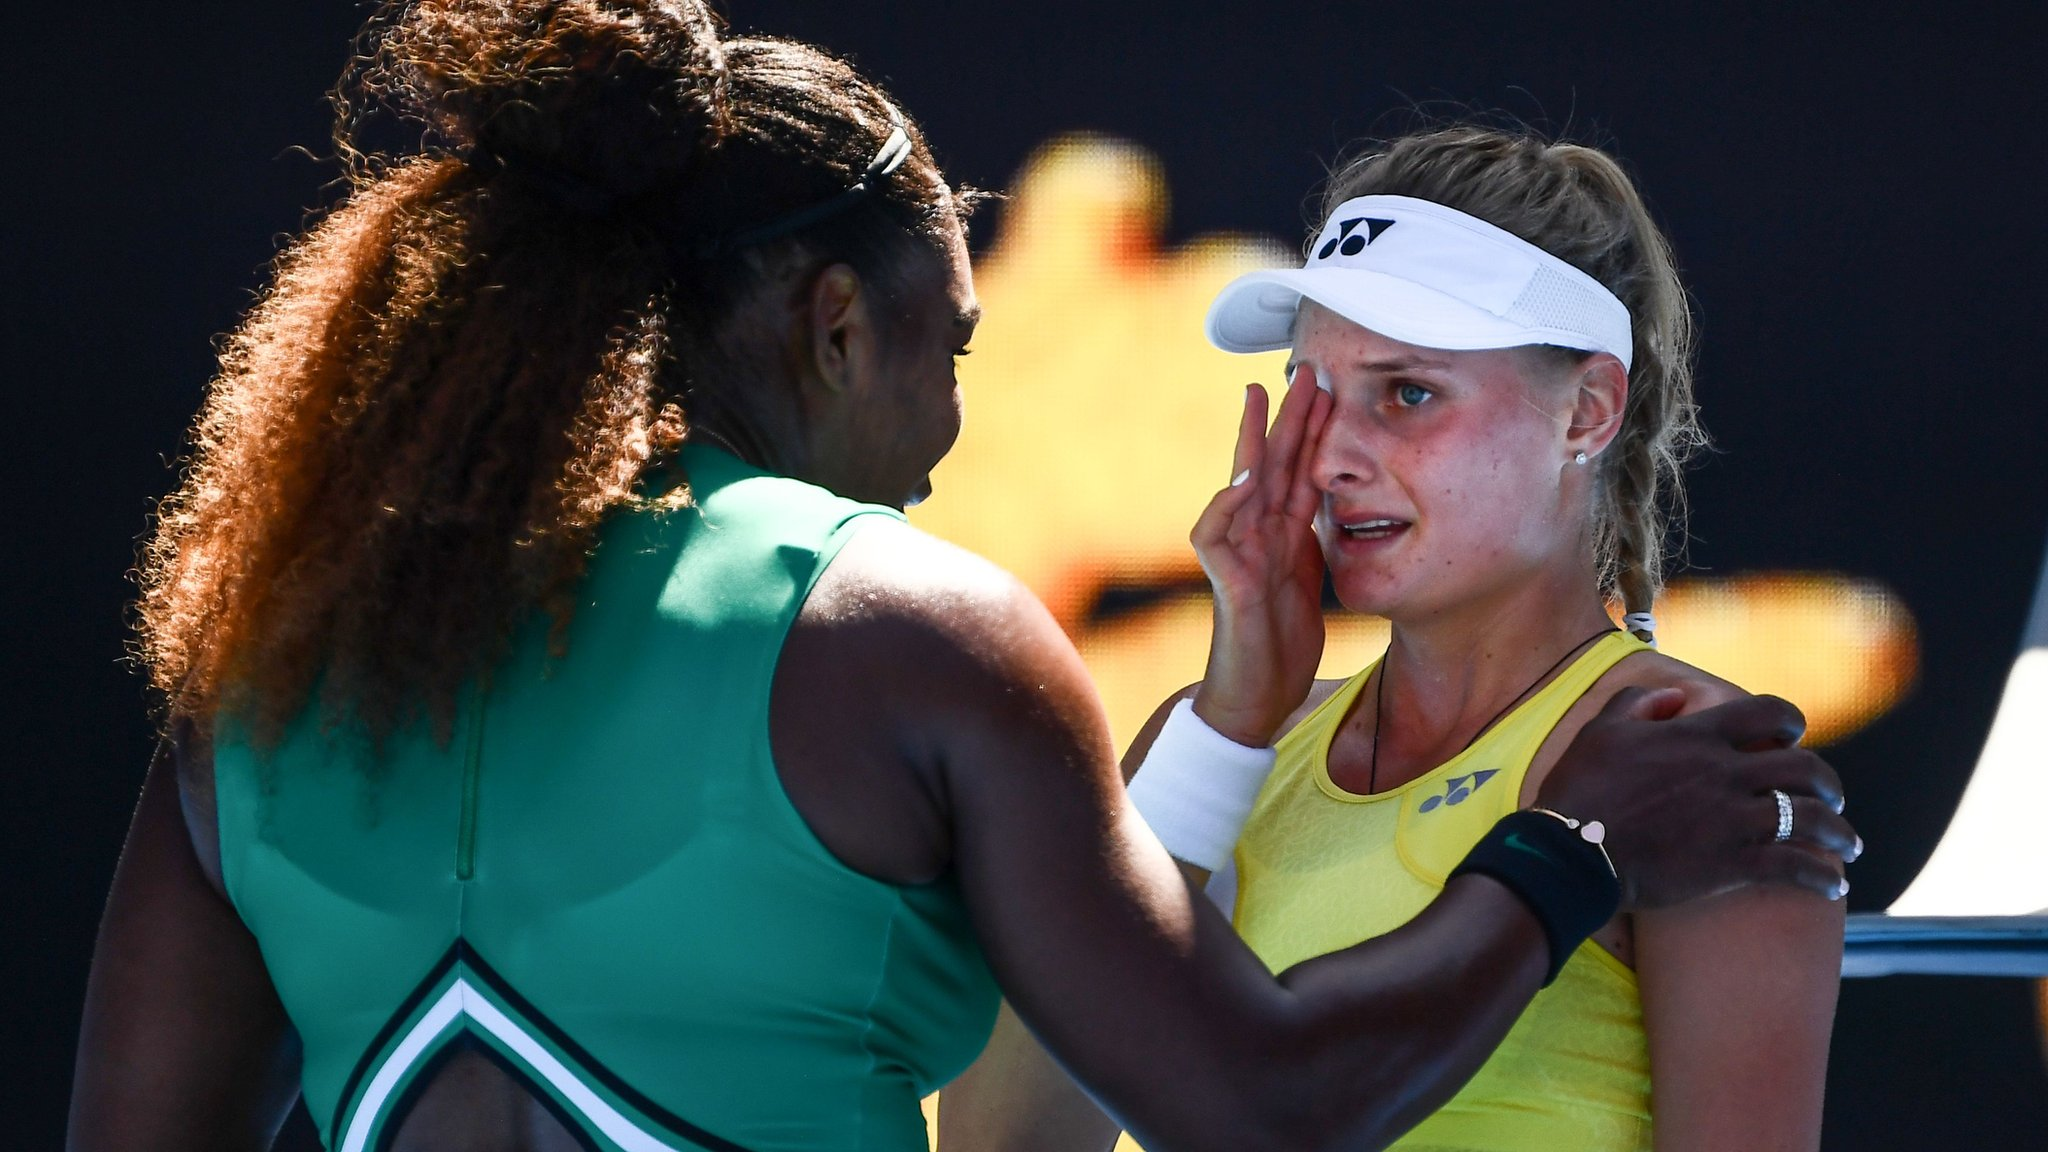 'Don't cry' - Williams comforts teenager after beating her